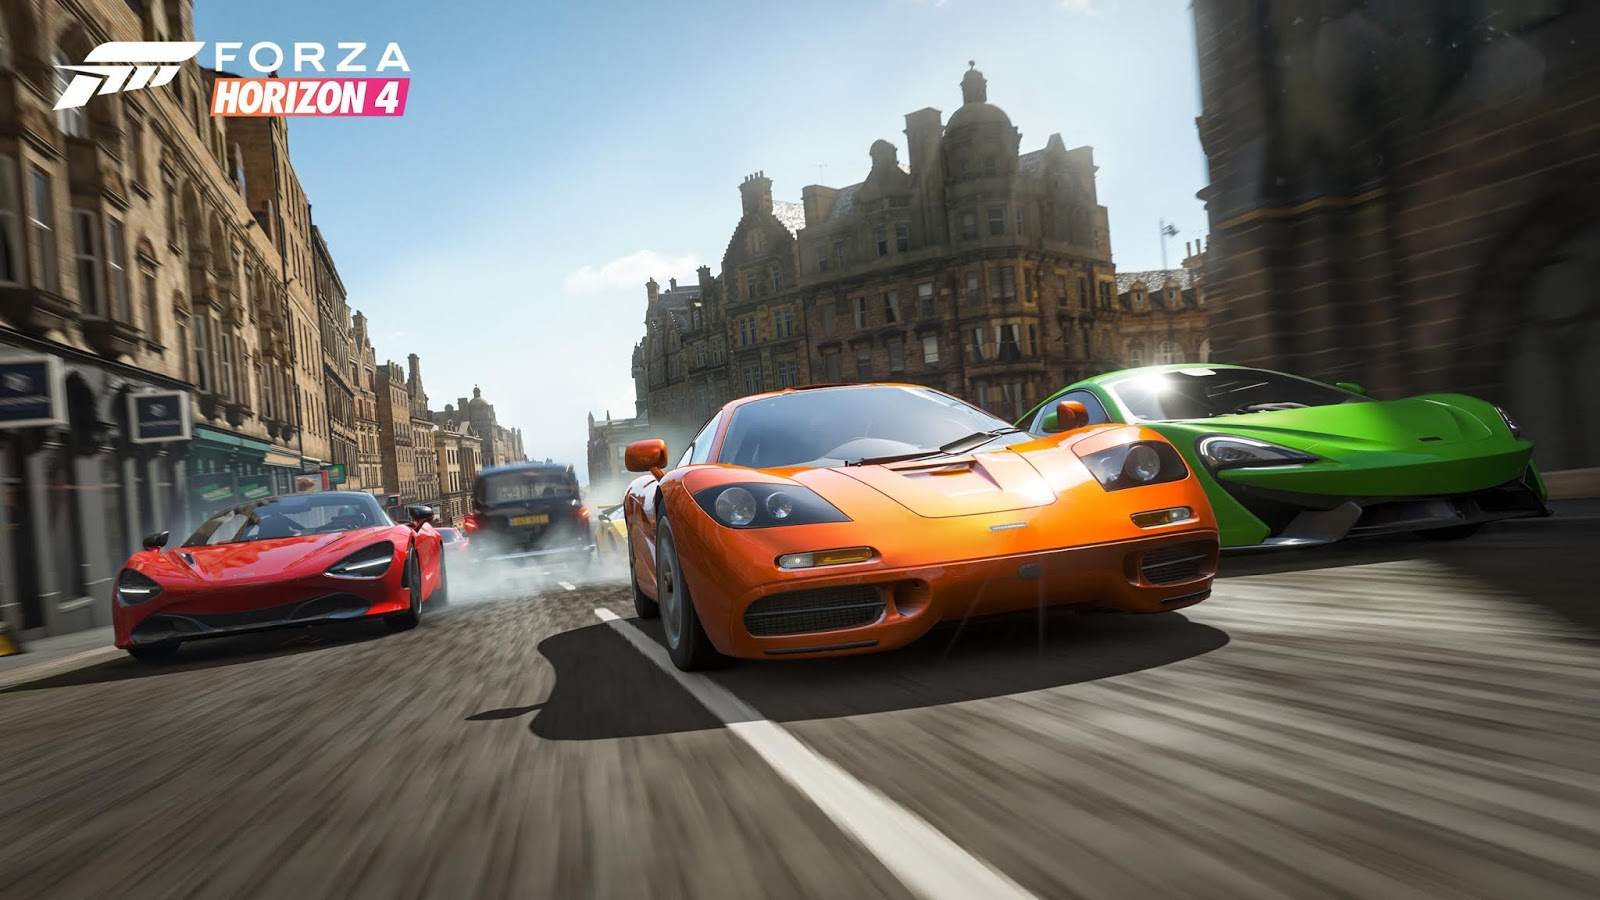 Forza Horizon 4: Ultimate Edition v1 332 904 2 + All DLCs